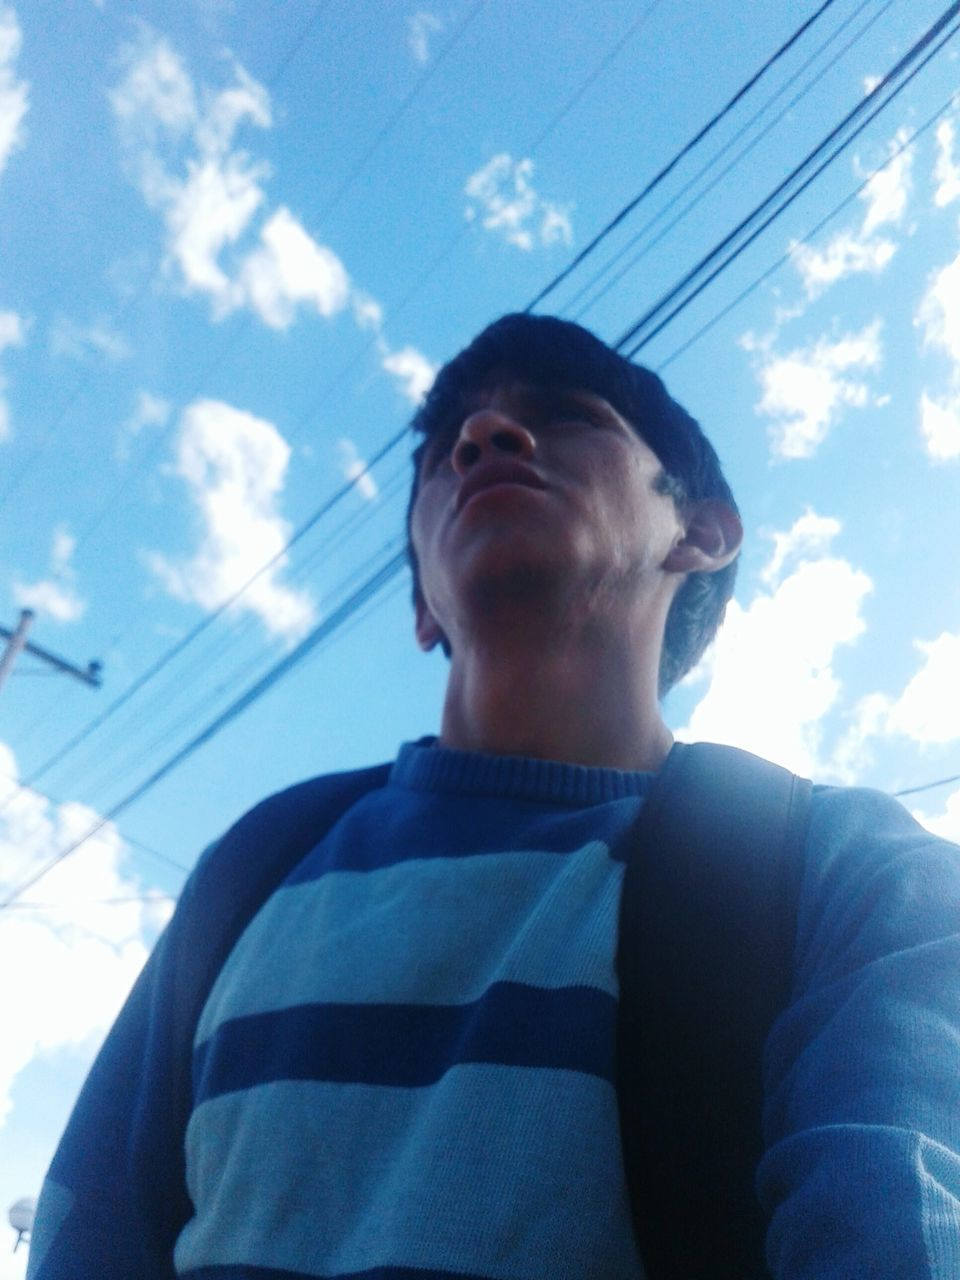 sky, low angle view, cloud - sky, real people, one person, cable, day, outdoors, young adult, nature